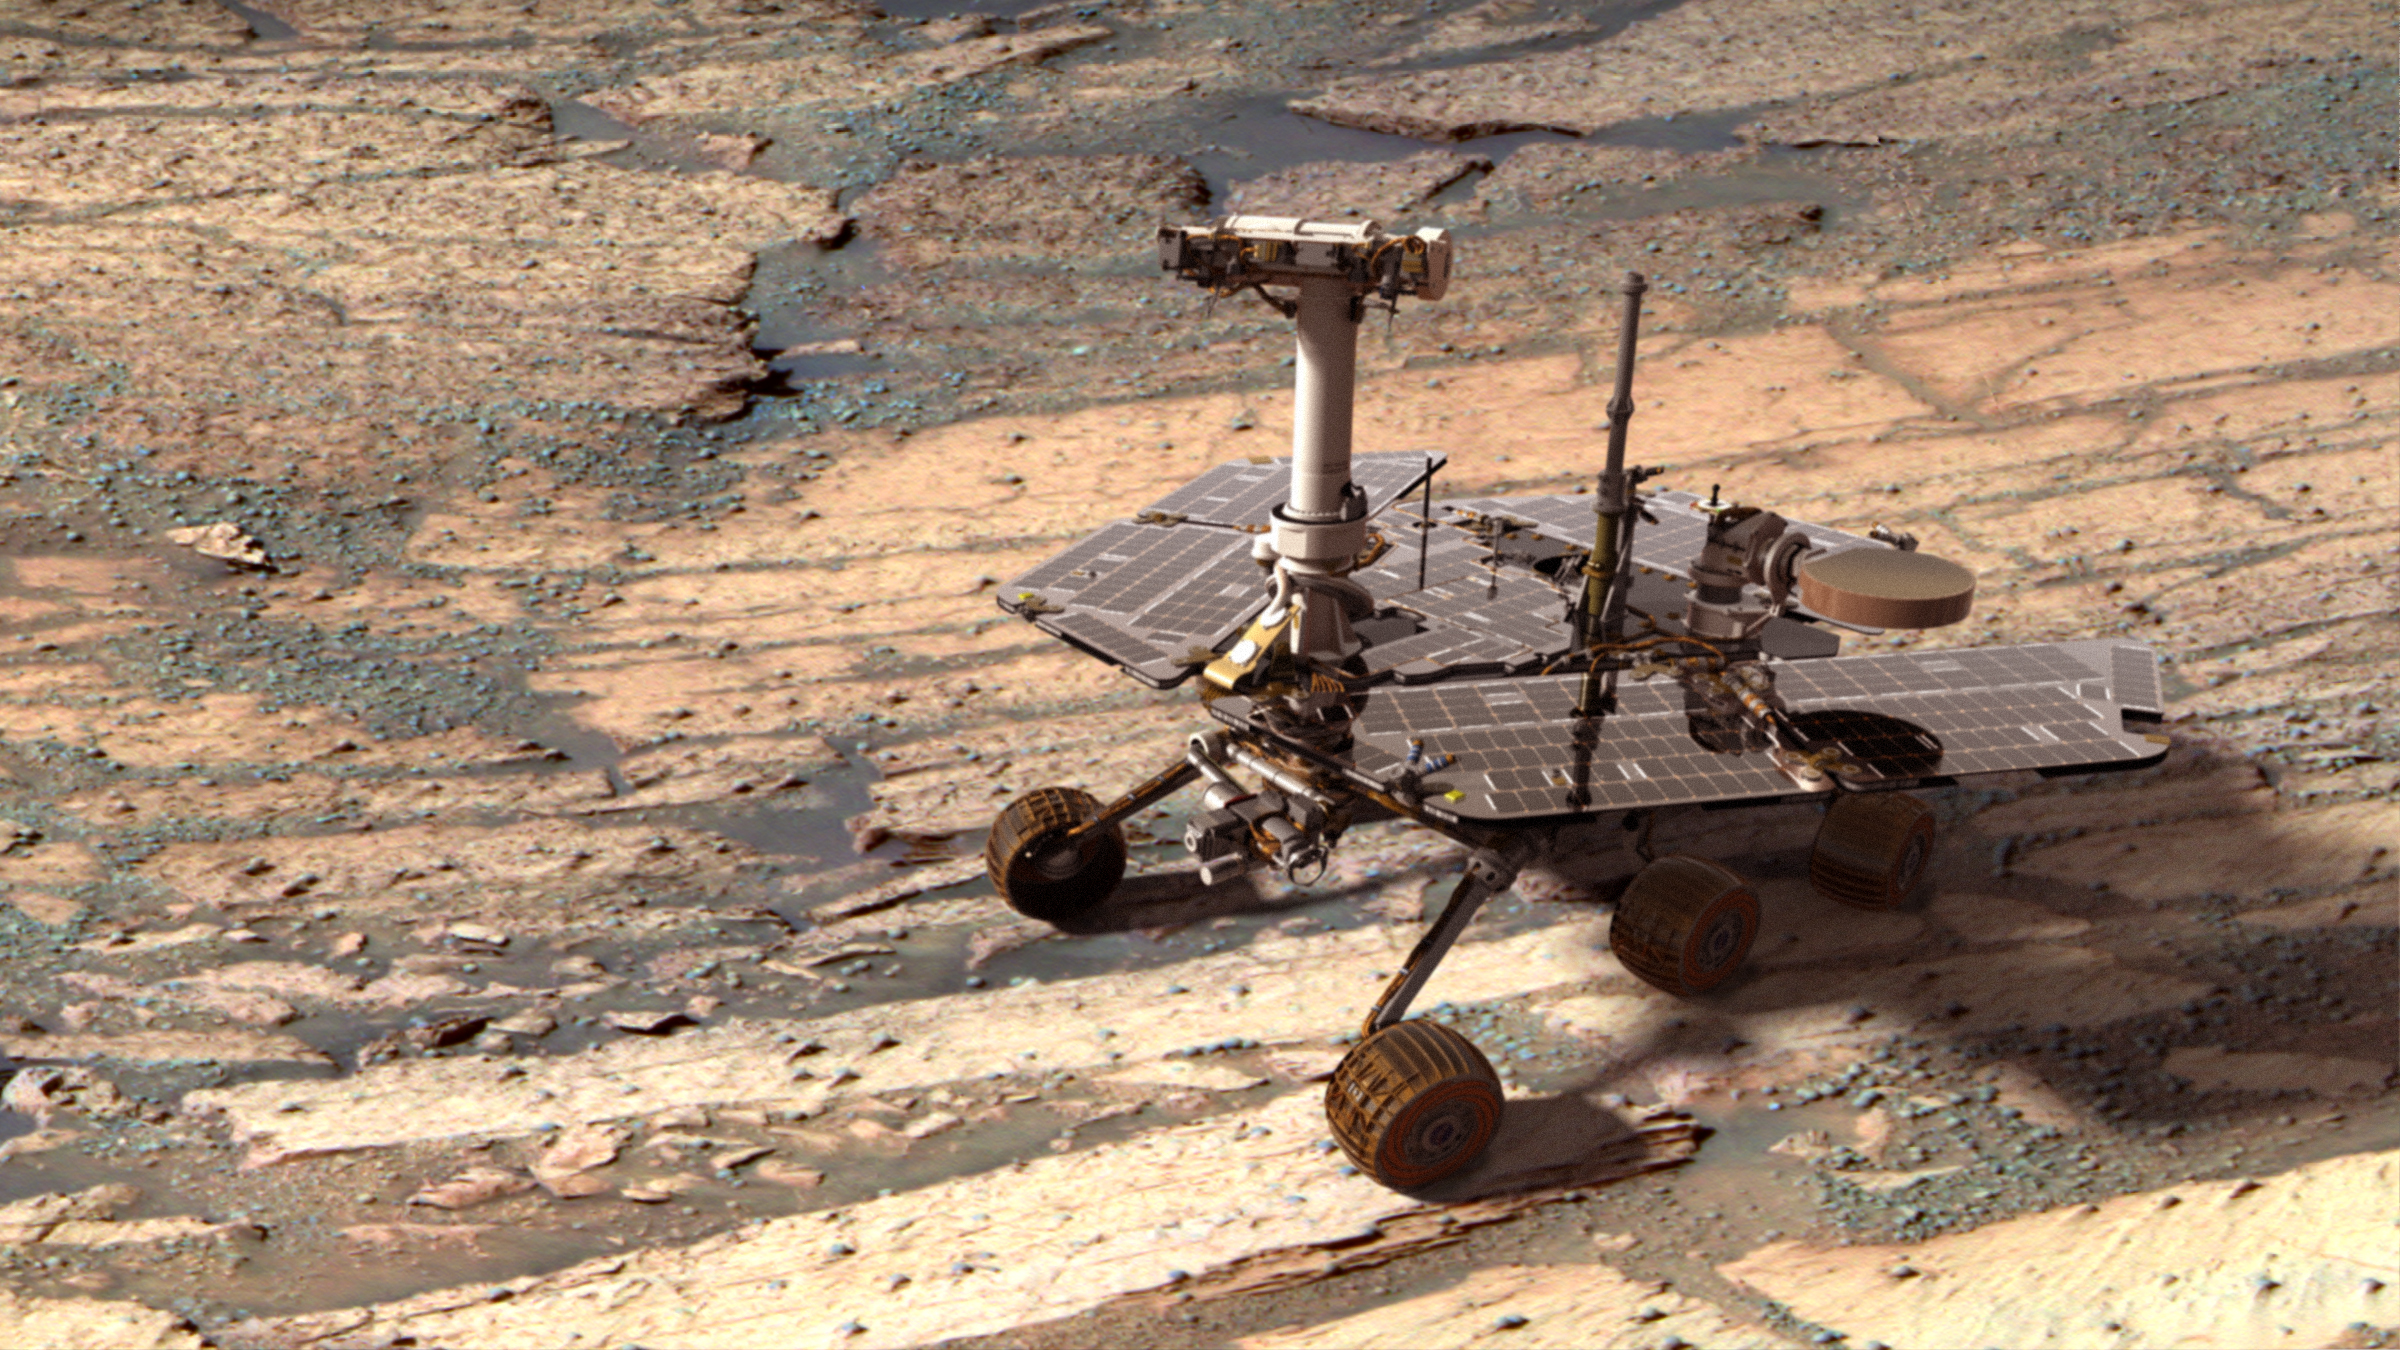 Mars Rovers | Space Photos